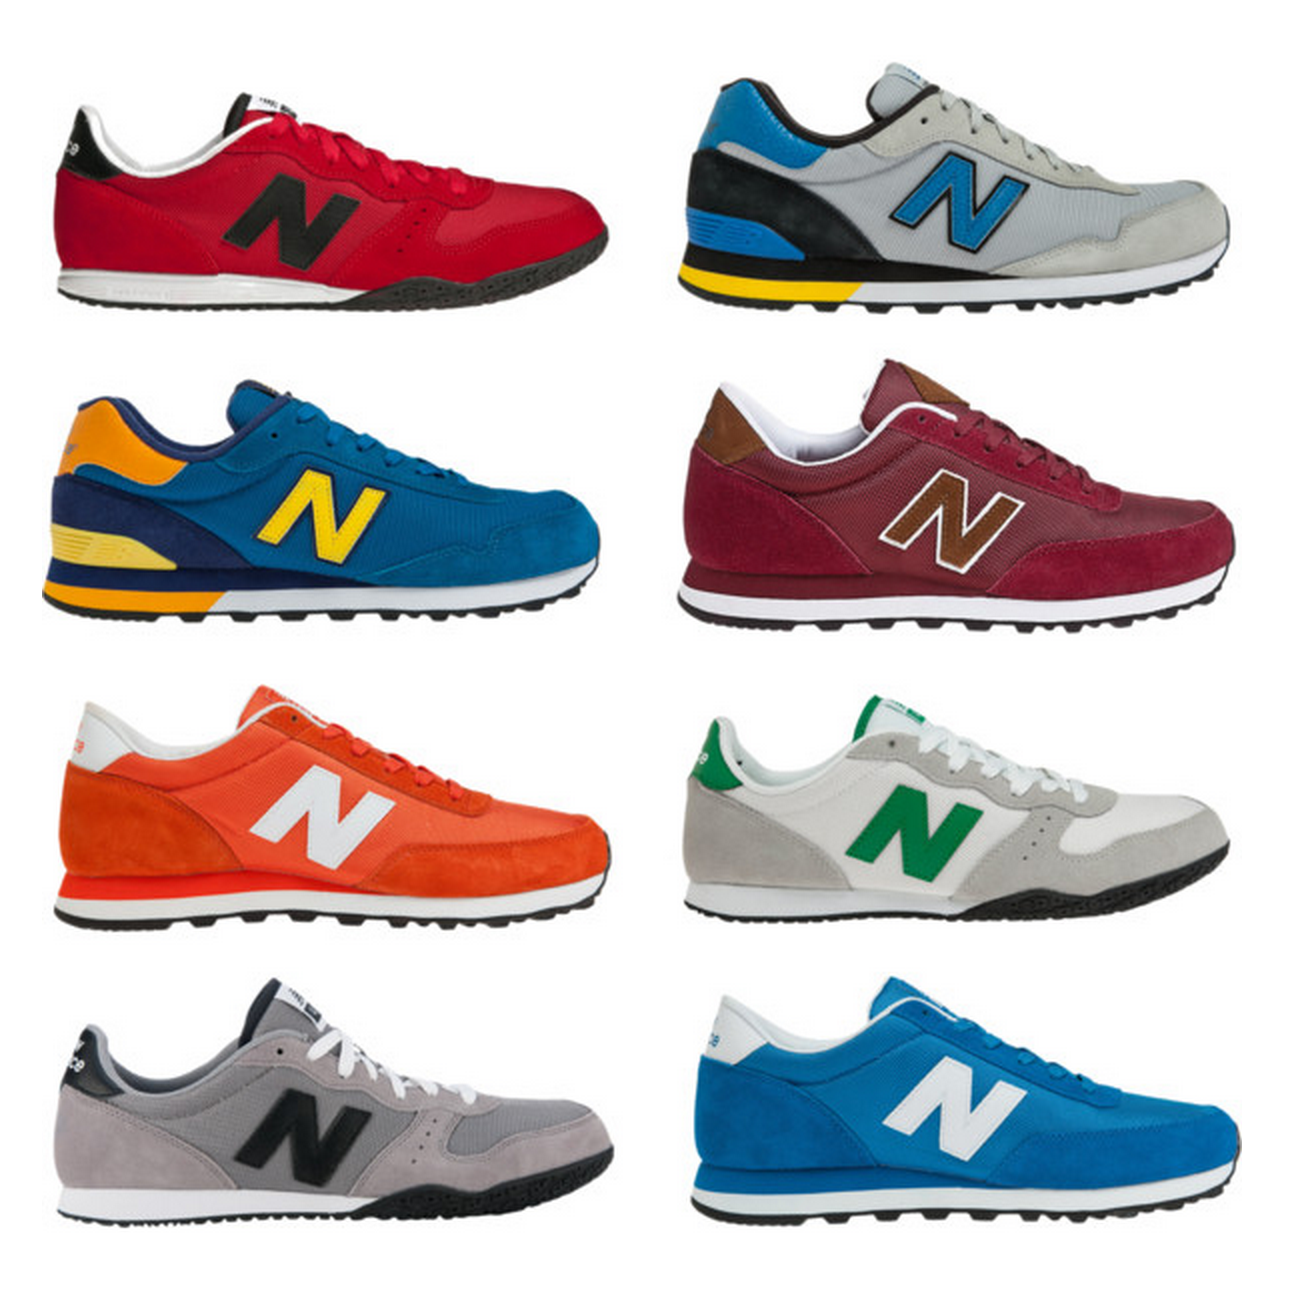 Which New Balance shoes should I get for my husband? He cannot decide...